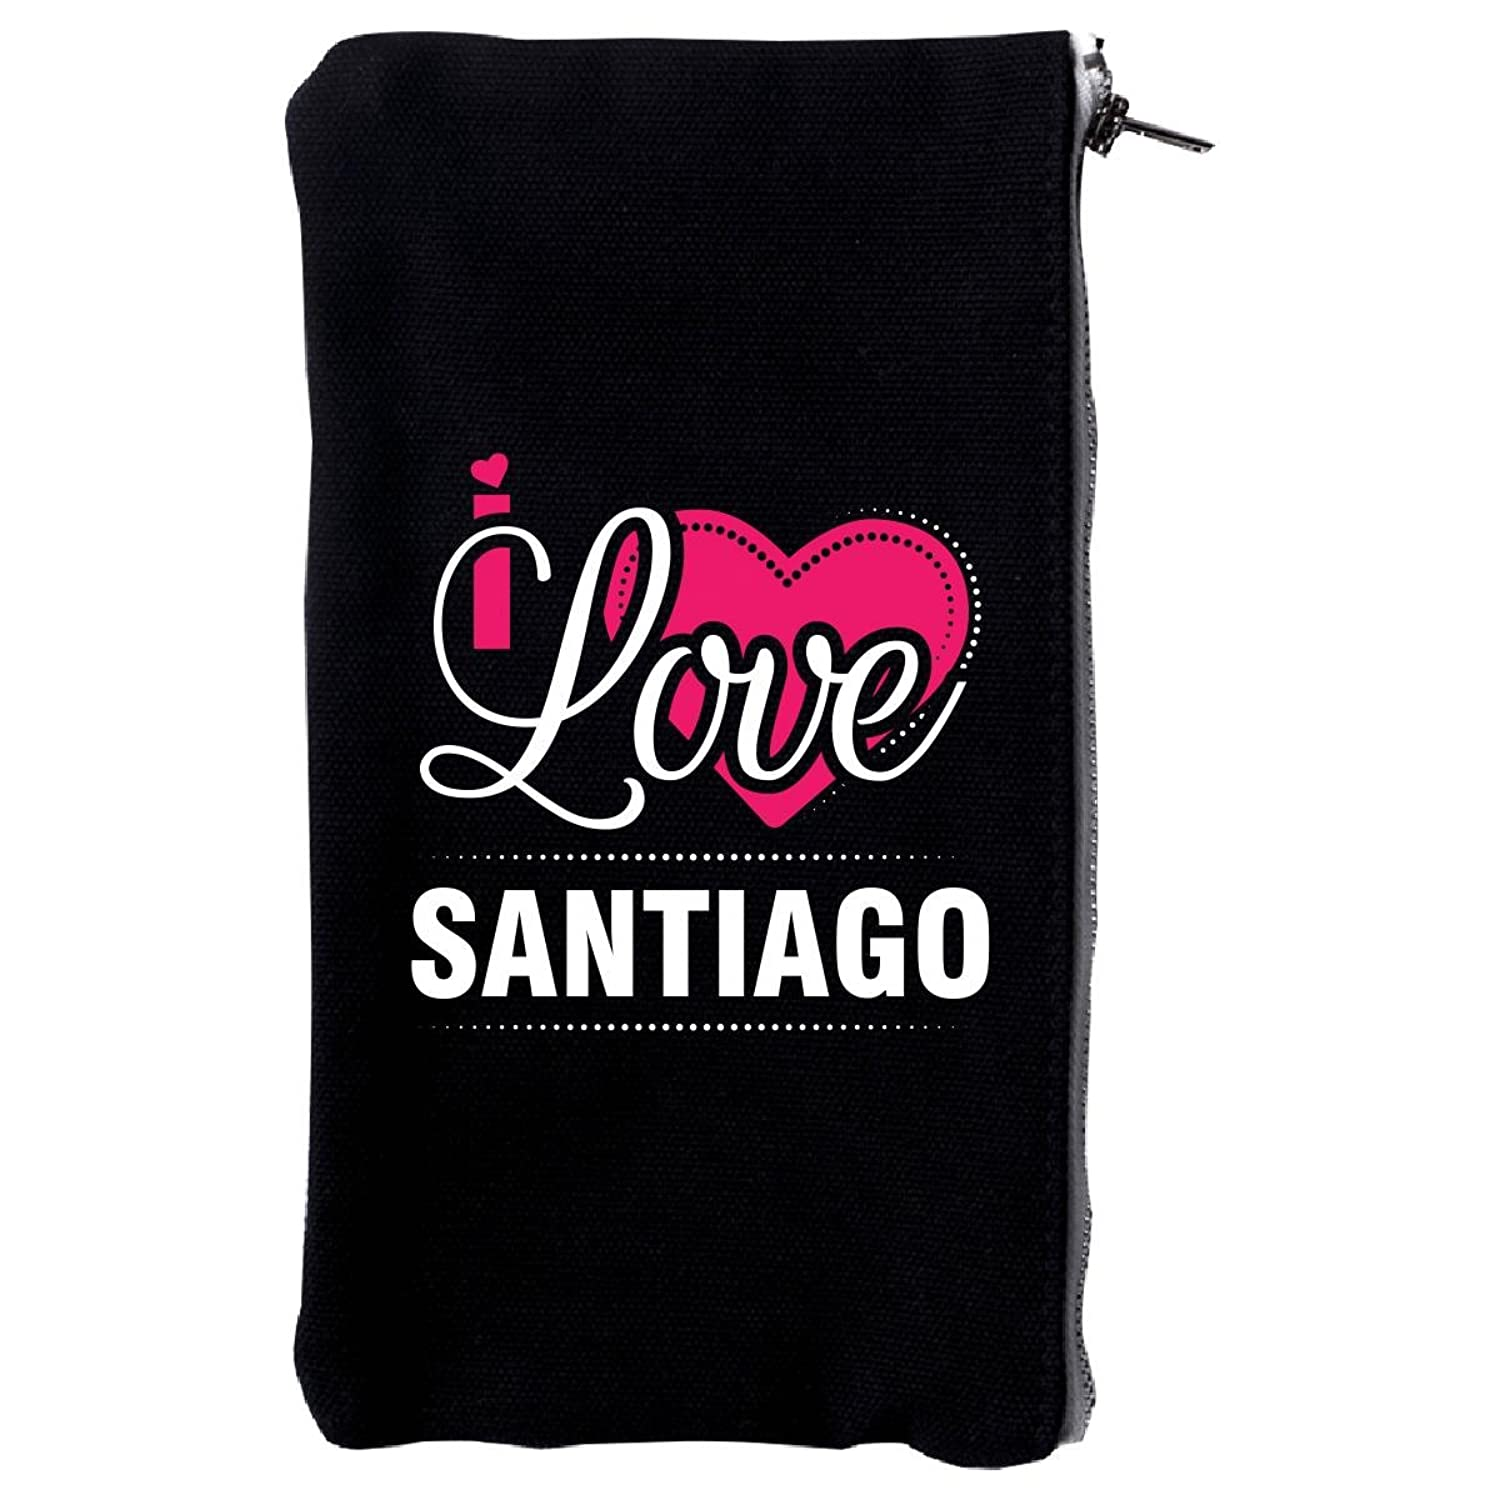 I Love Santiago - Cool Gift For Santiago From Girlfriend - Make Up Case